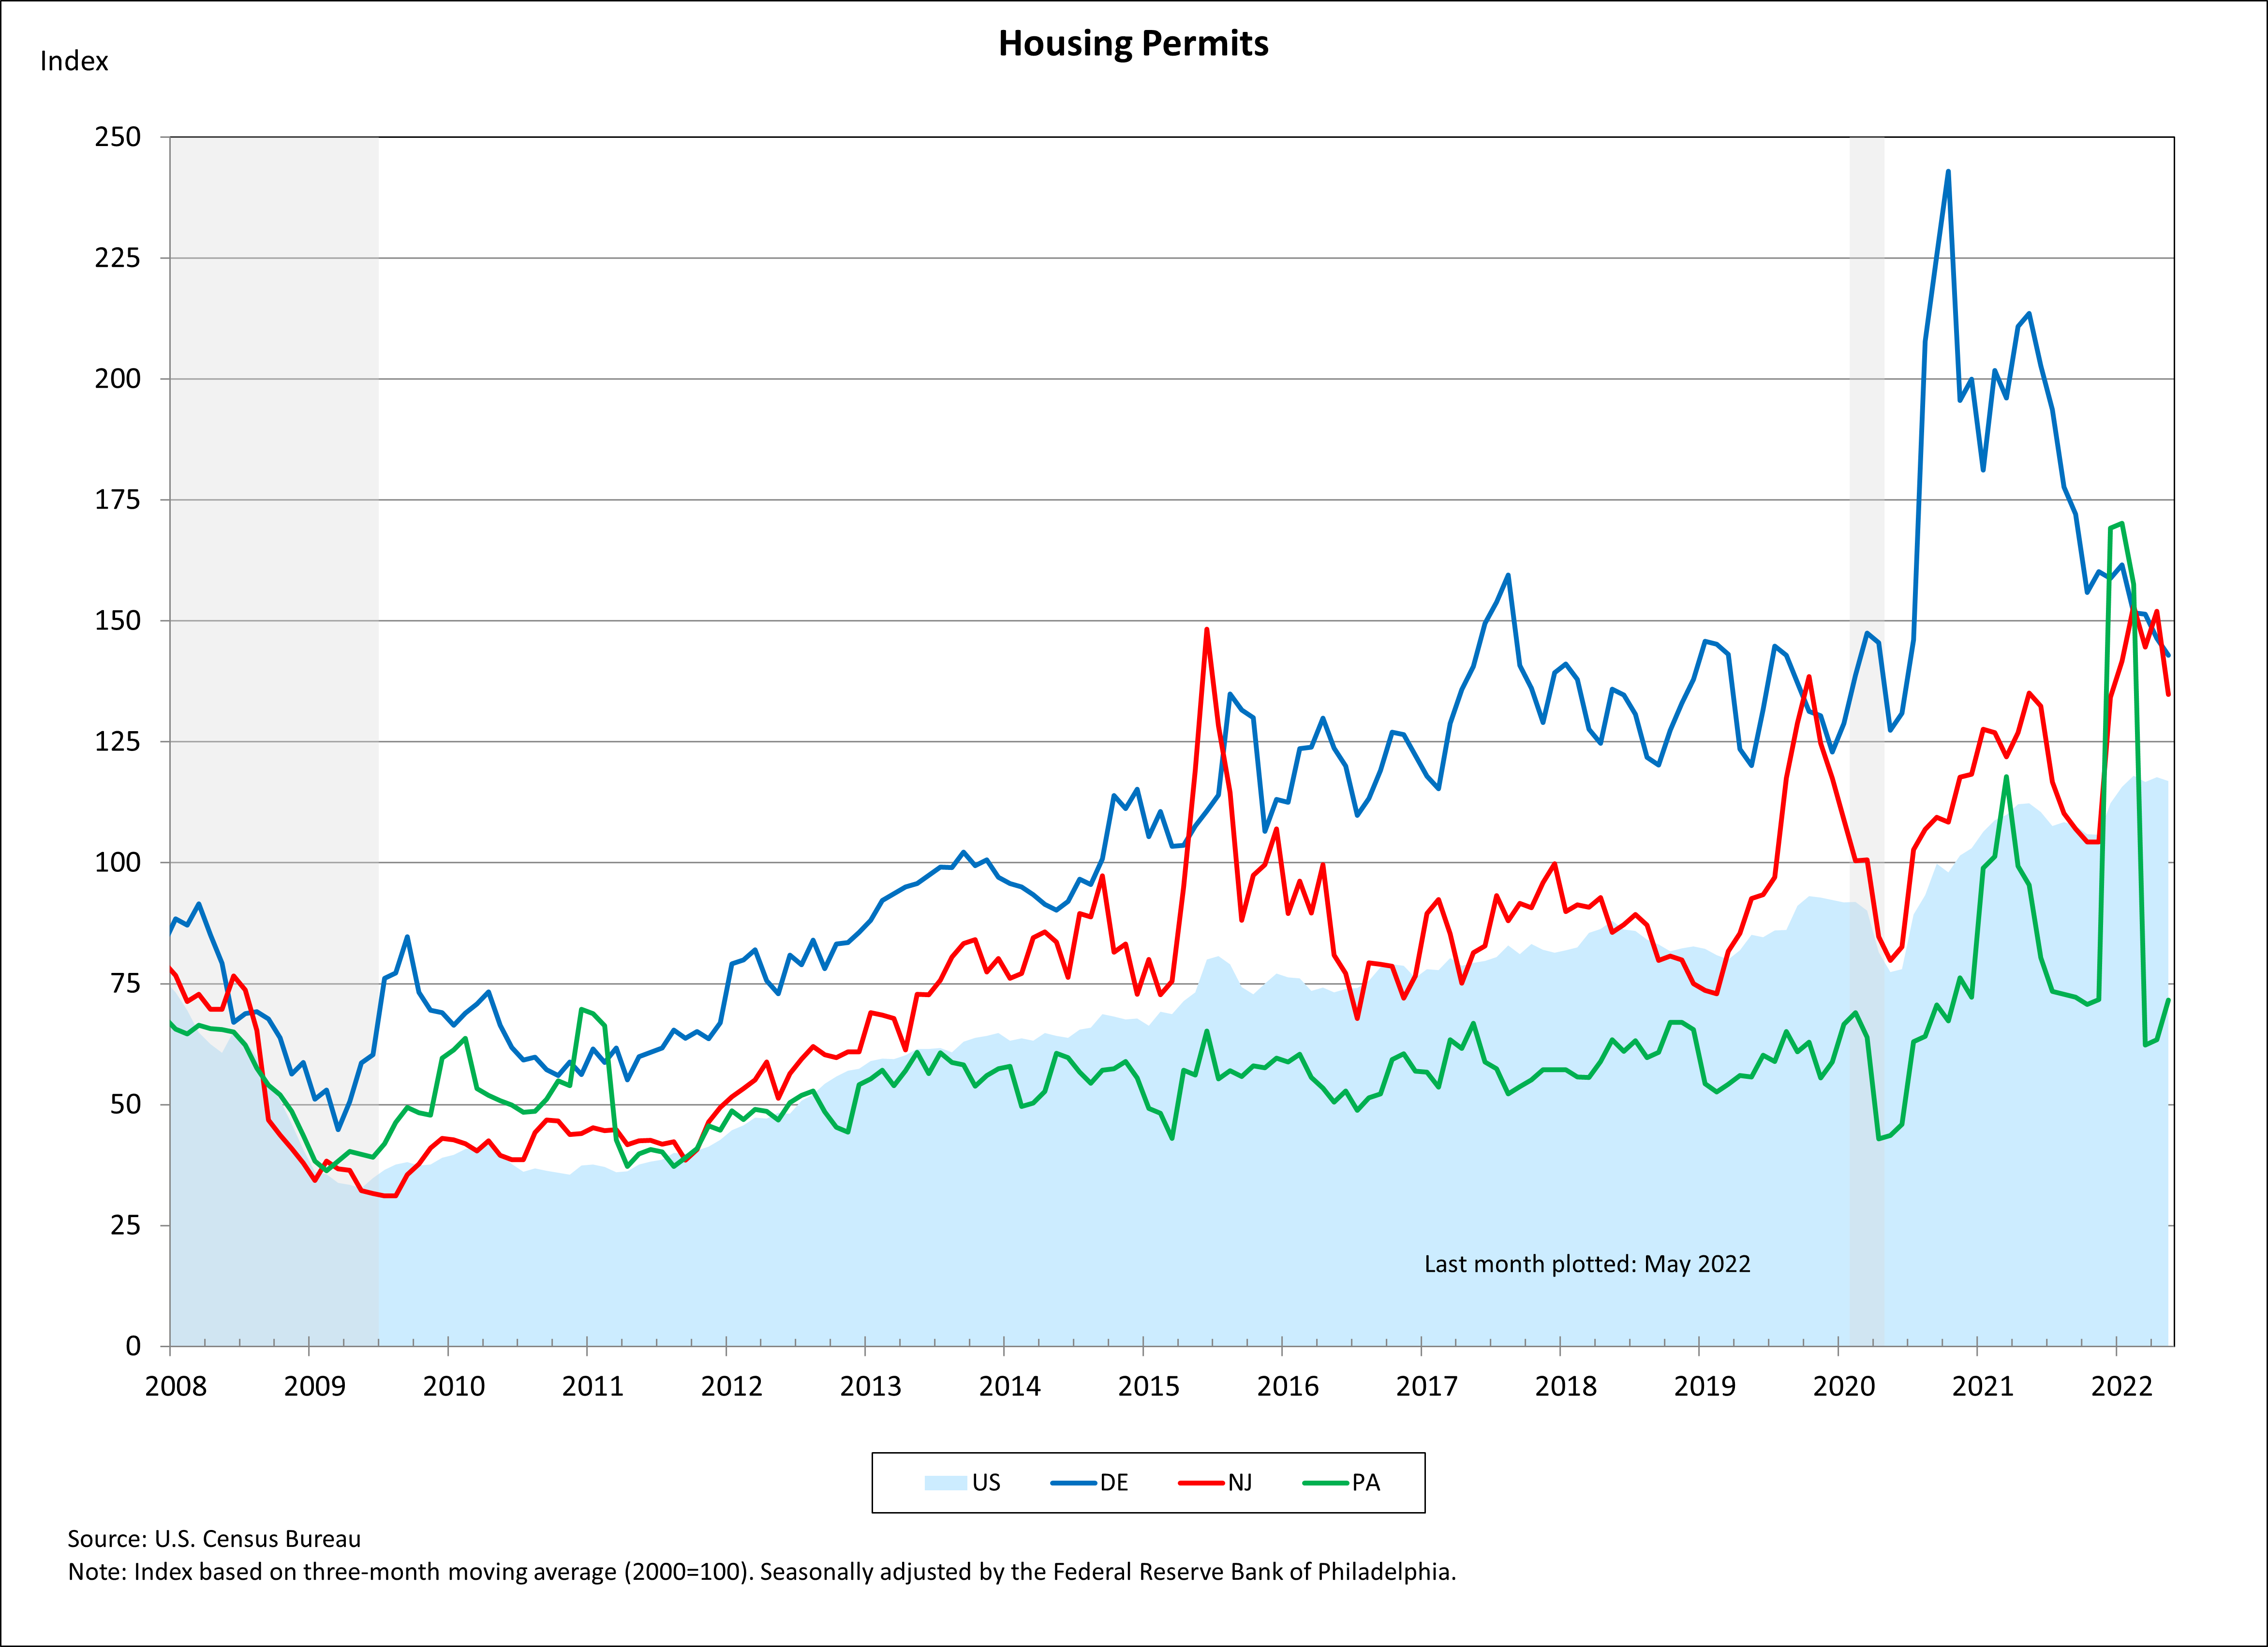 Line chart showing Housing Permits